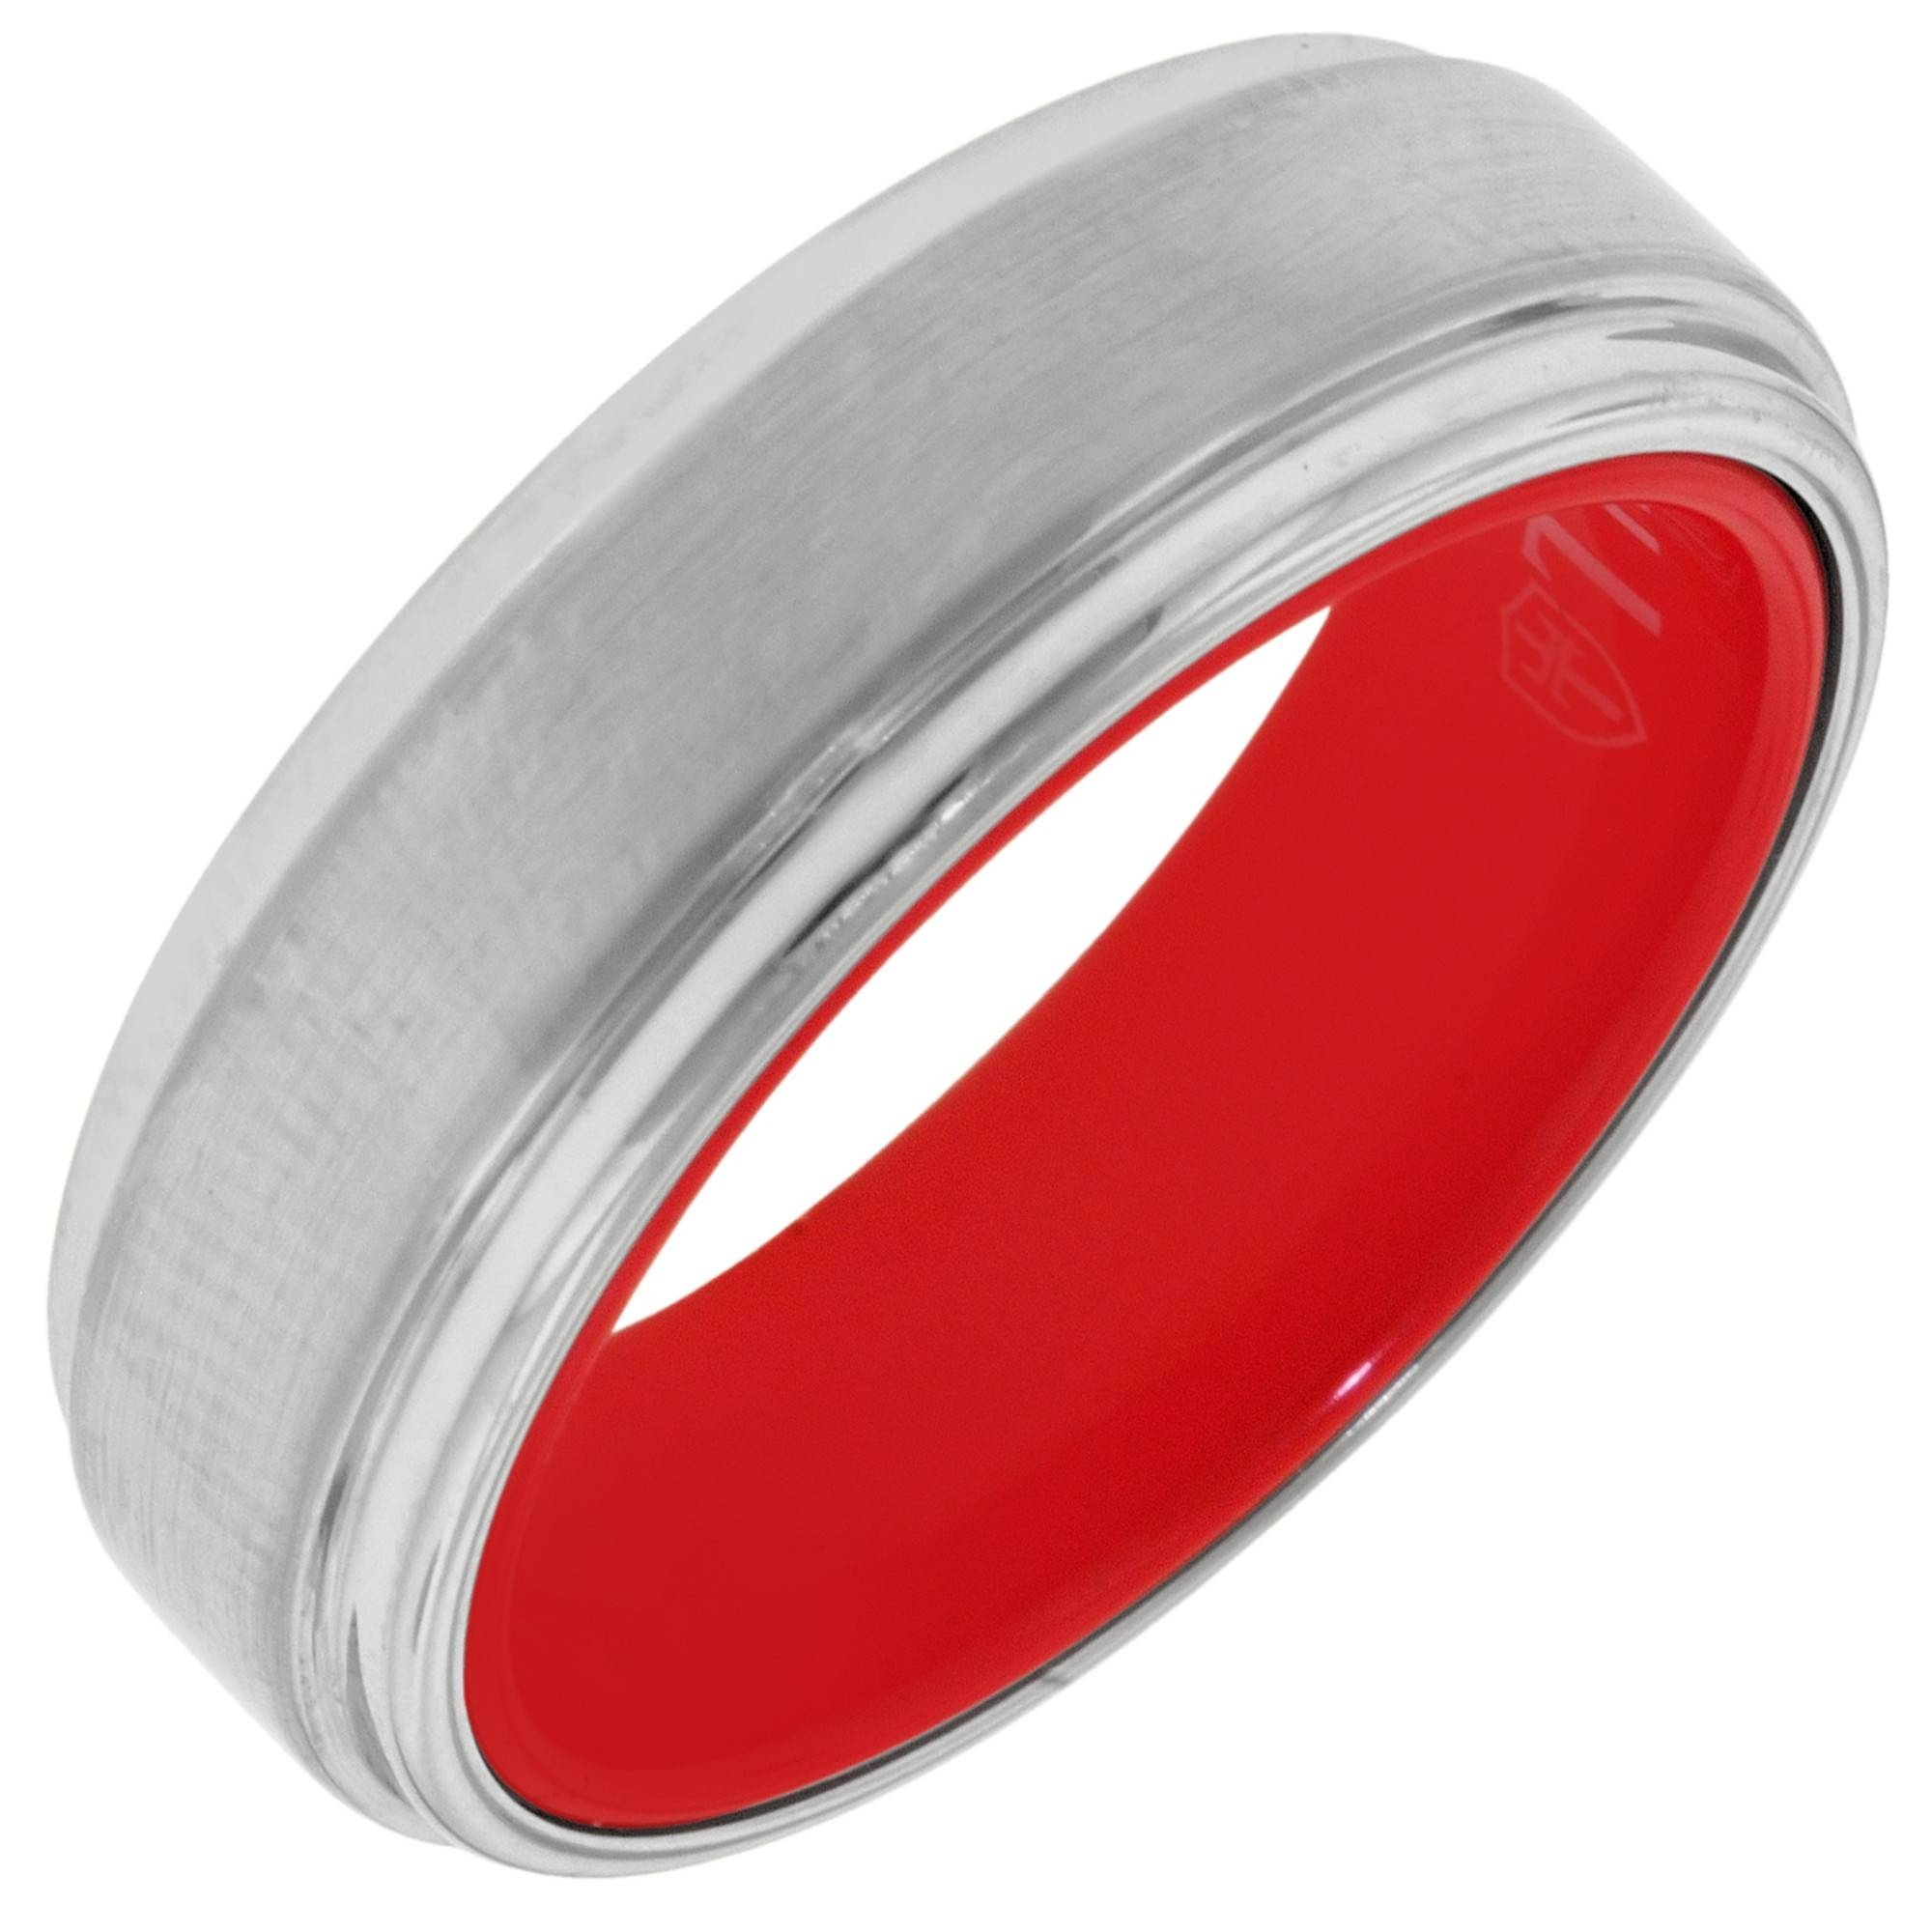 Mens Tungsten Wedding Band With Red Inside (7Mm) Within Red Men's Wedding Bands (View 7 of 15)